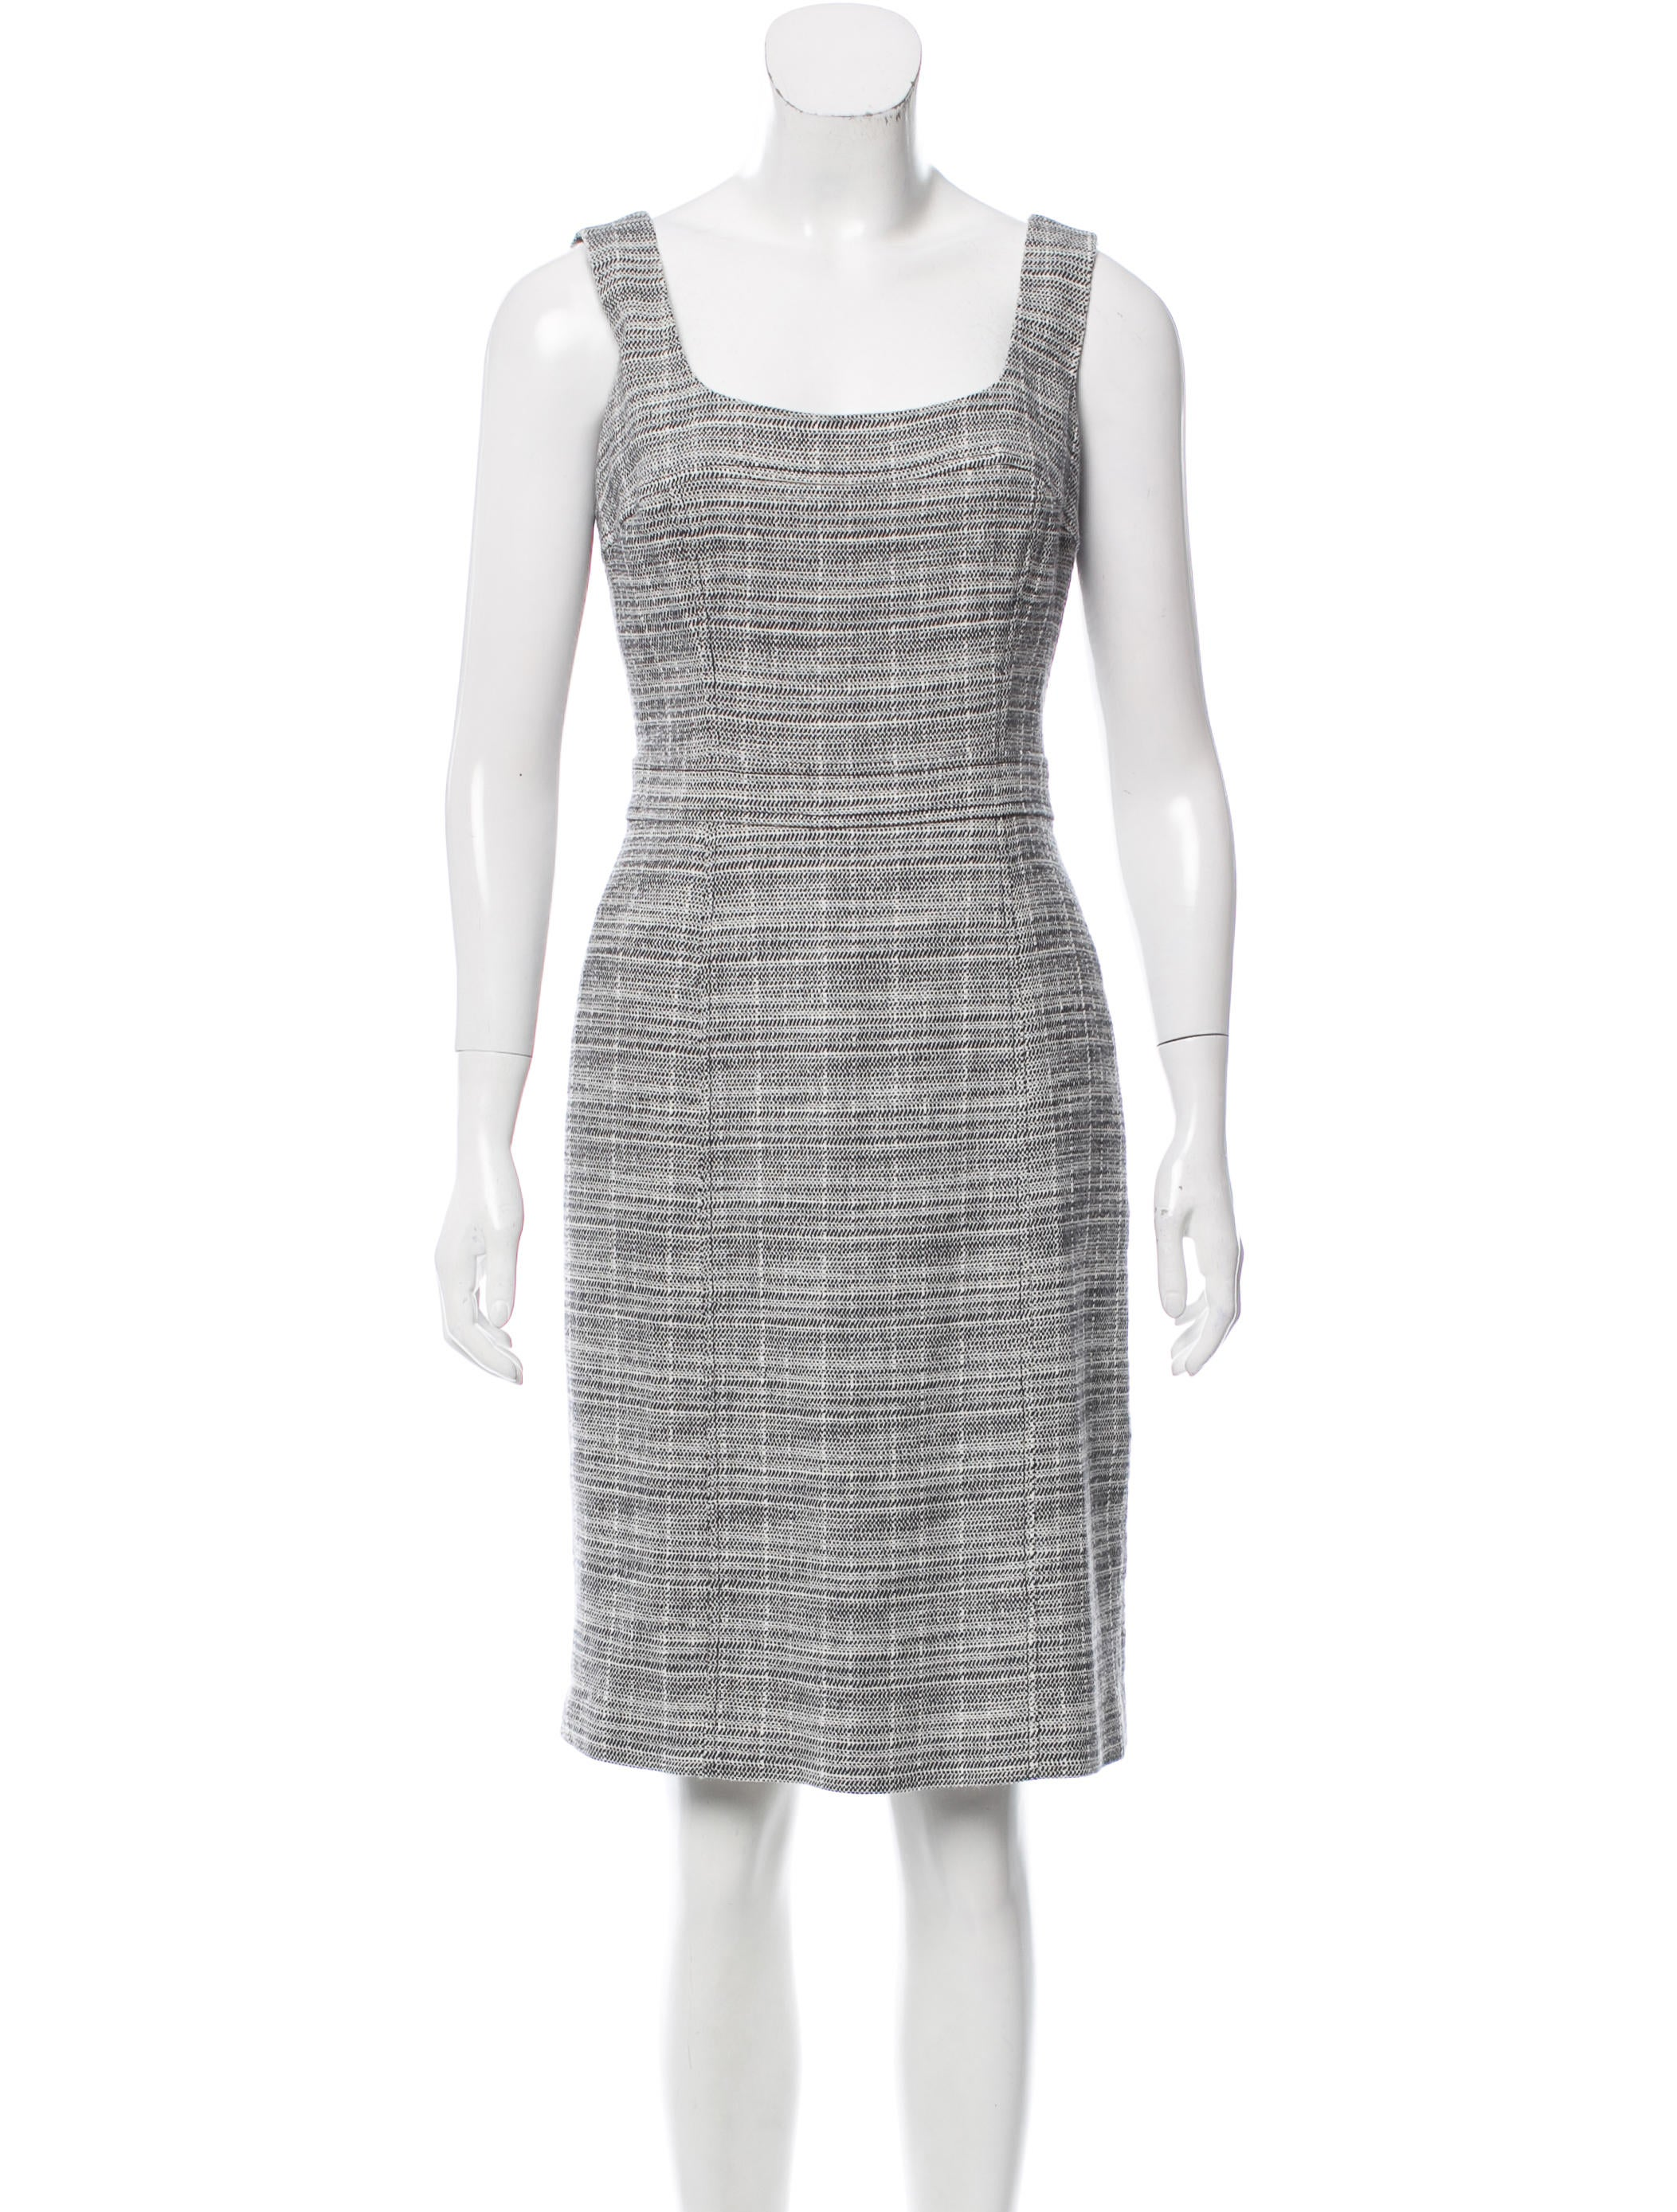 1ed043bf5d2c Tory Burch Sleeveless Bouclé Dress - Clothing - WTO106119